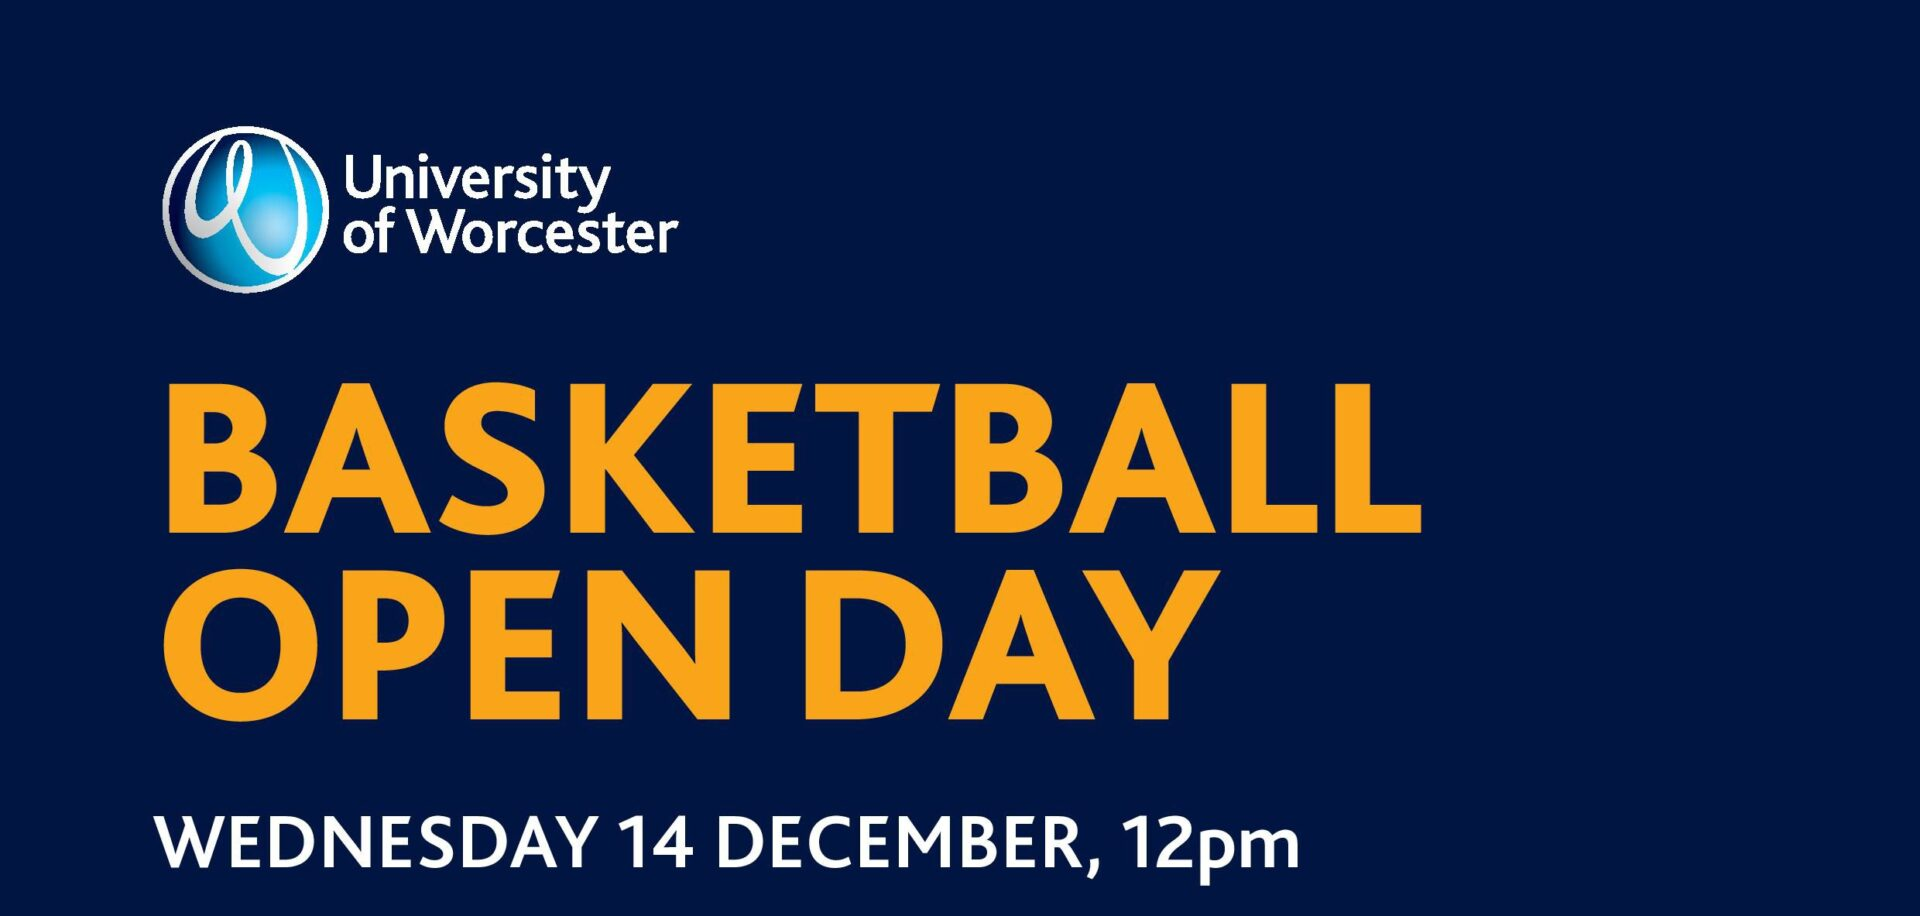 Basketball-open-day-2016-page-001-e1479911707350